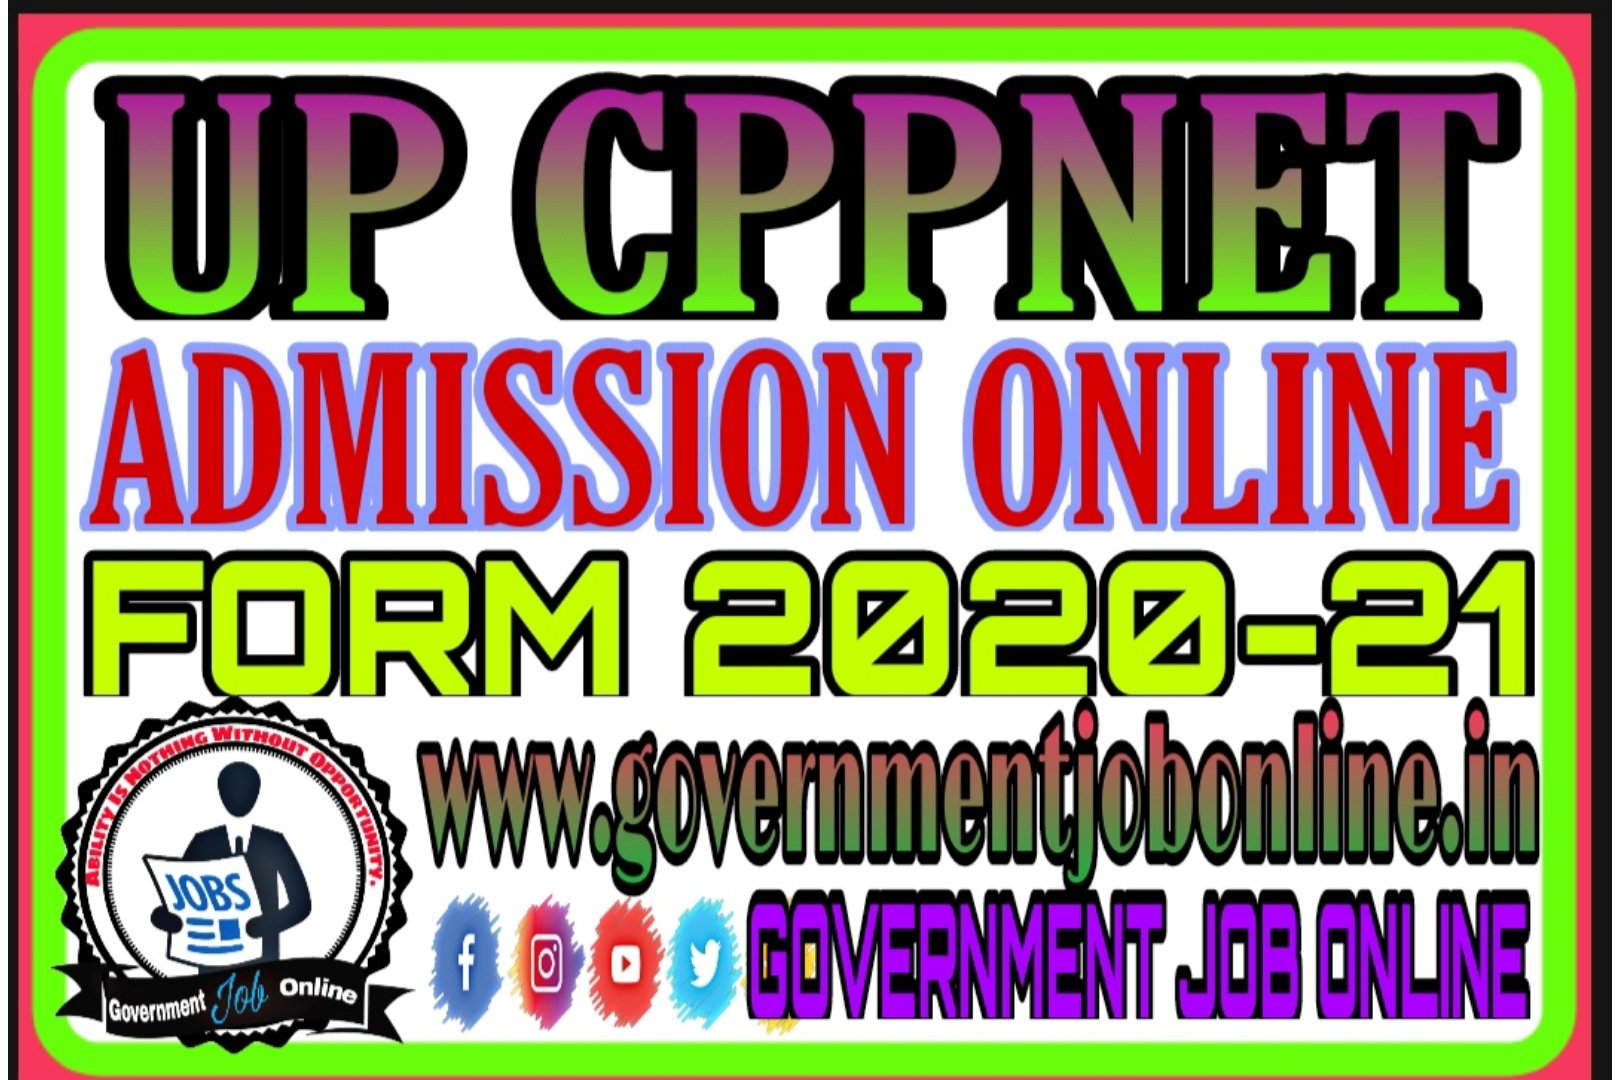 UP CPPNET Admission 2020 Online Form